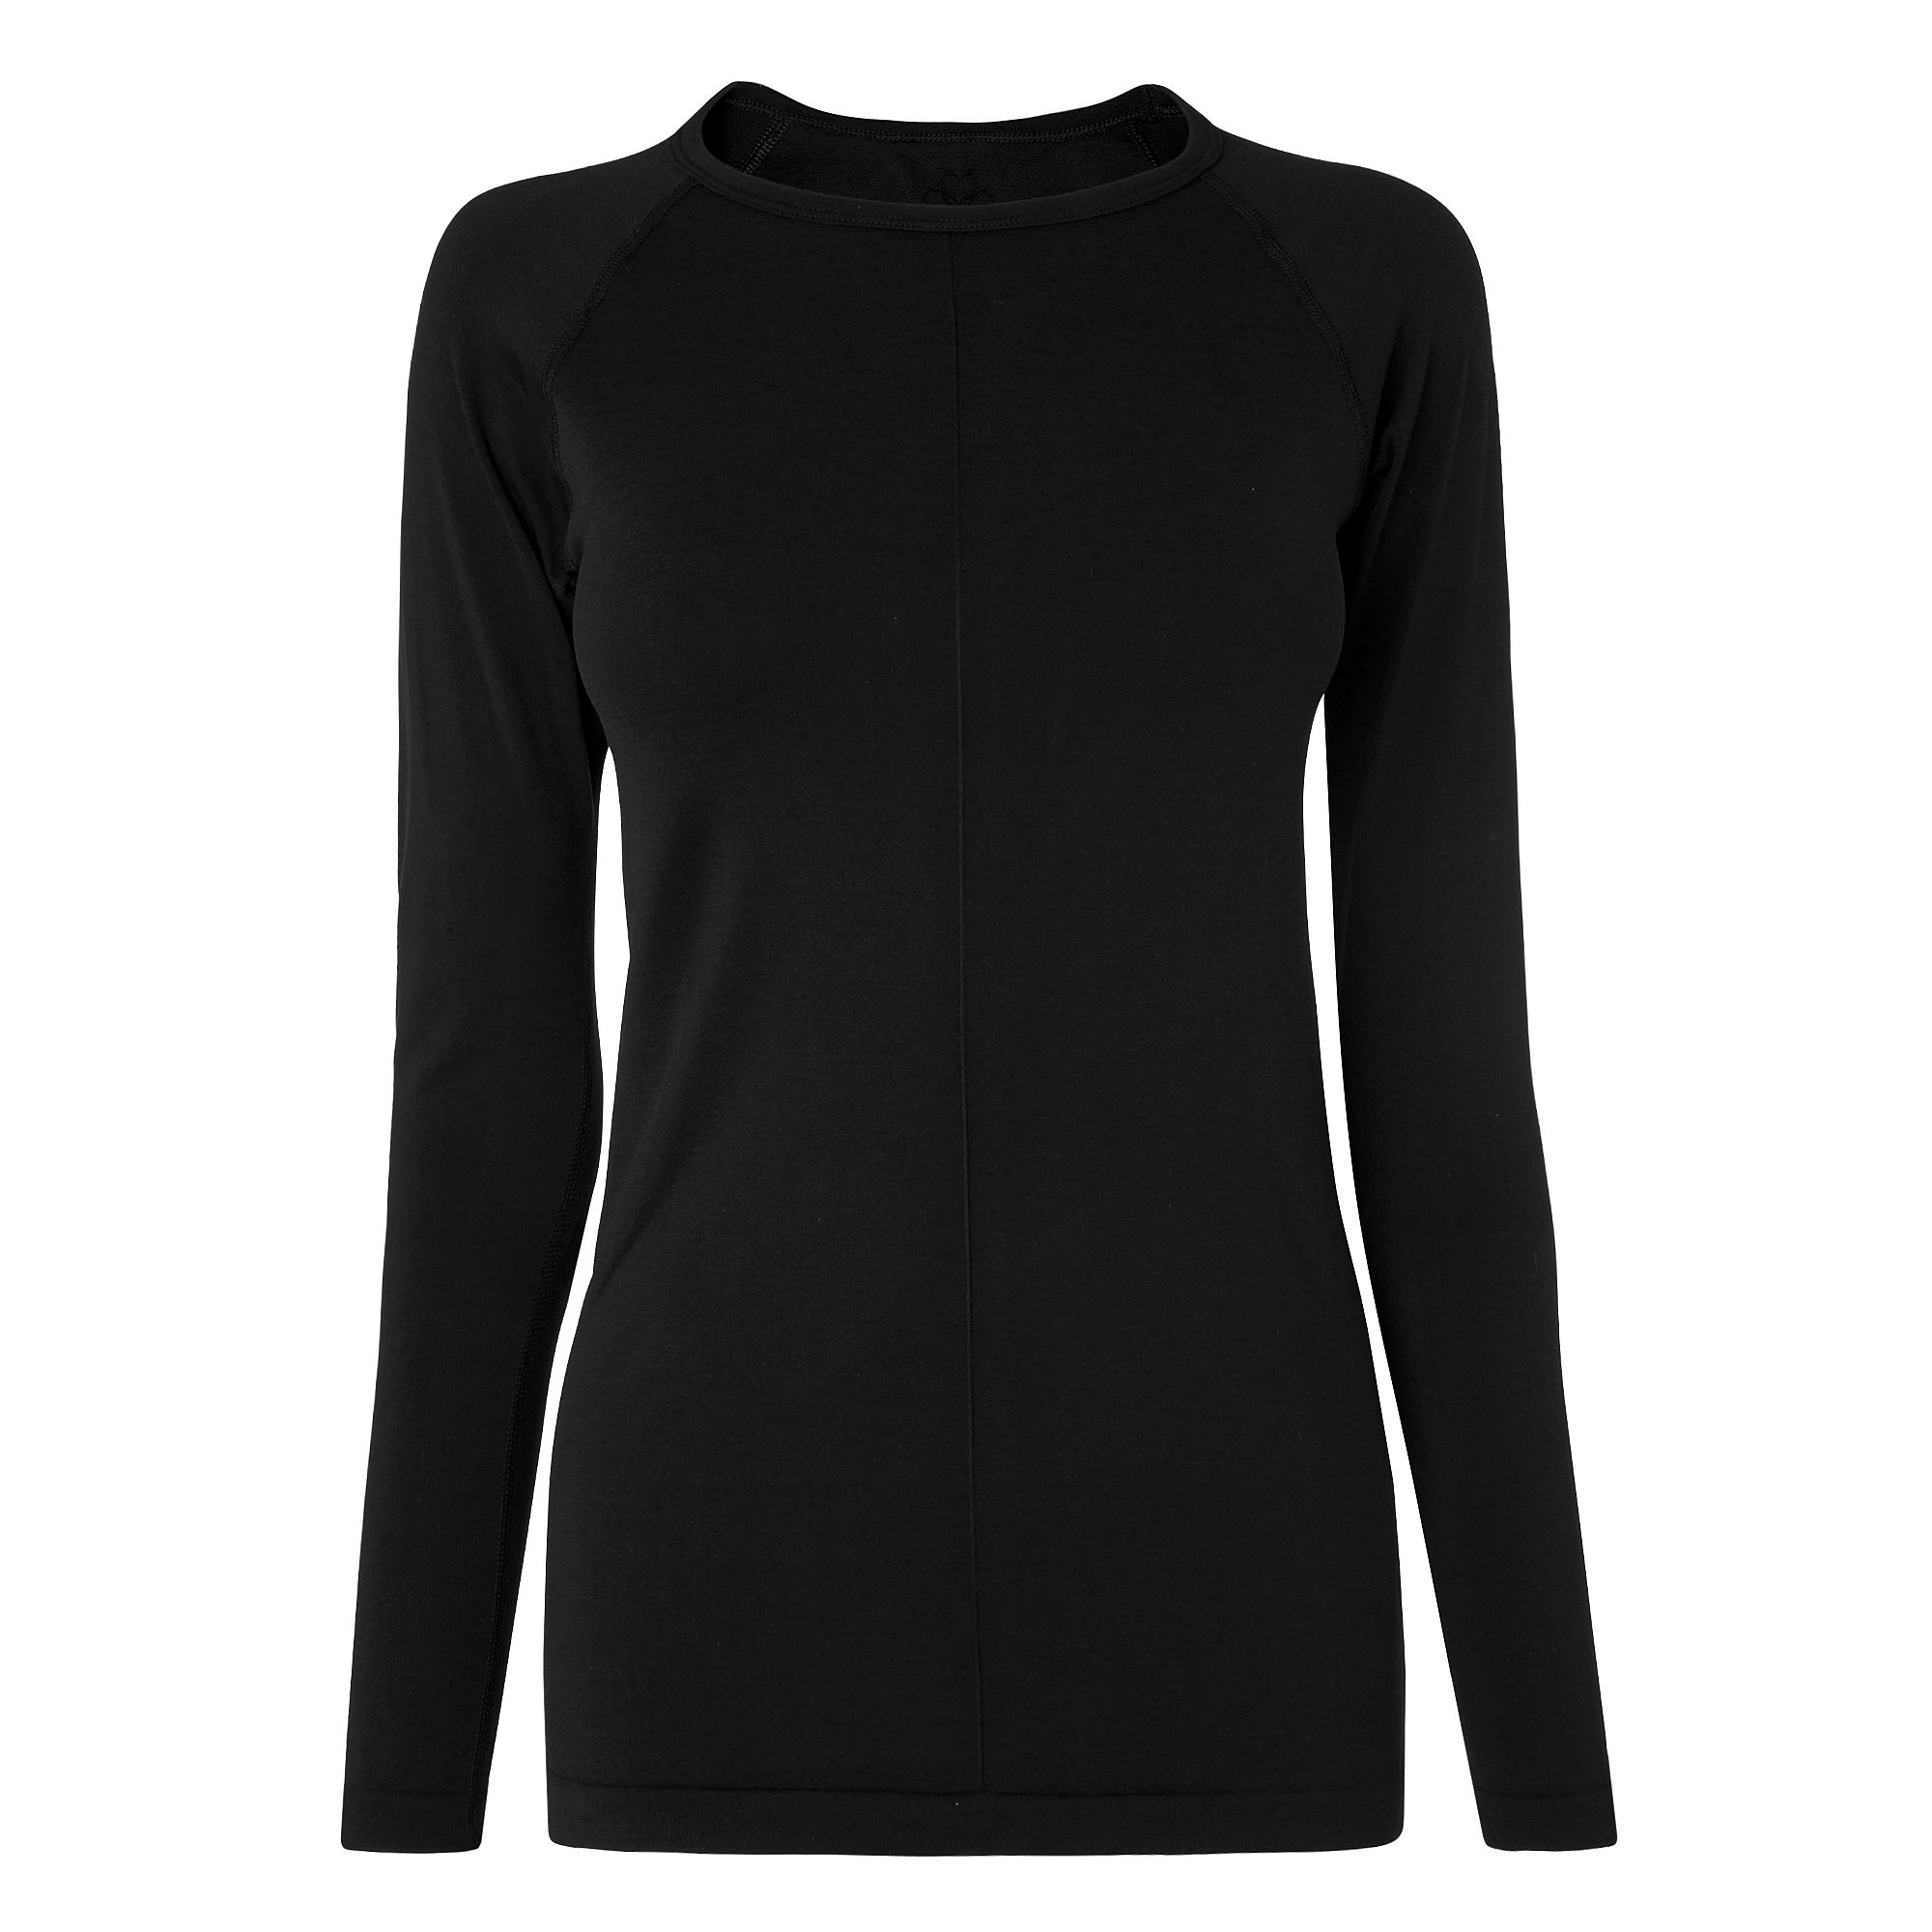 L.K. Bennett Flo Knit Sport Top, Black